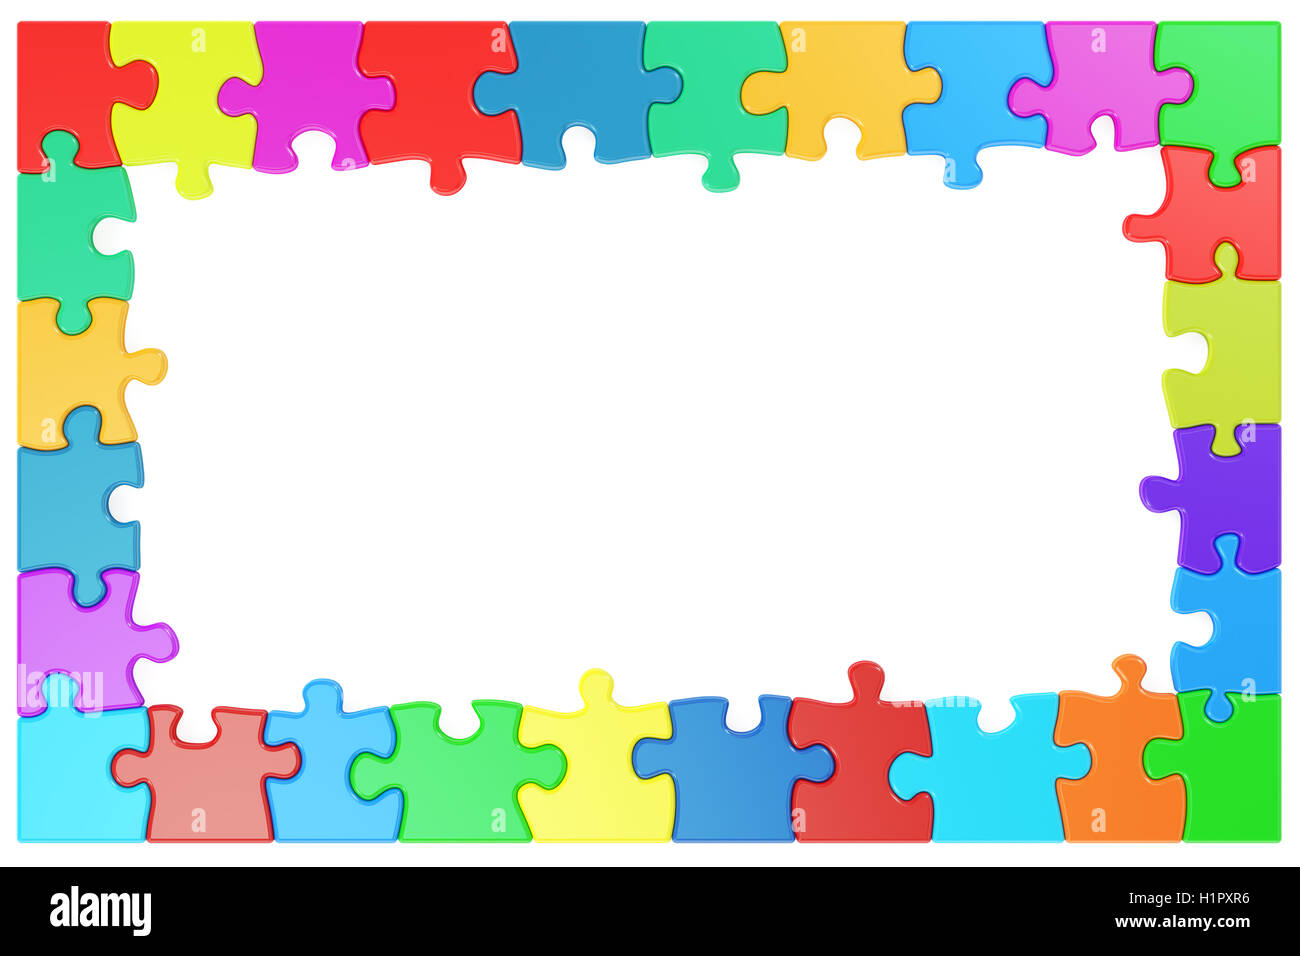 Jigsaw Puzzle Frame Stock Photos & Jigsaw Puzzle Frame Stock Images ...